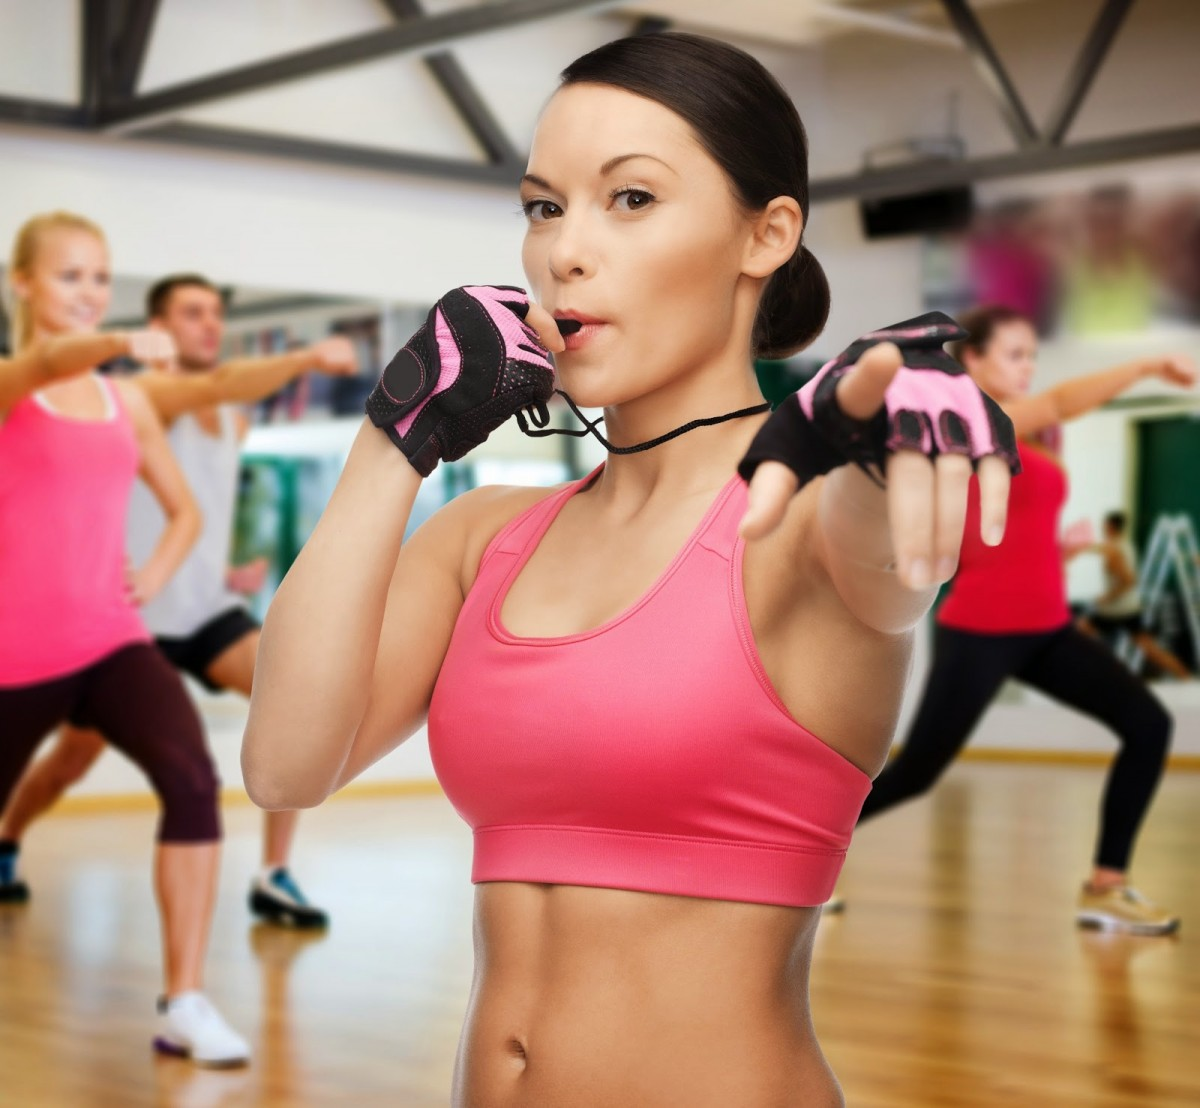 Small Business Loans for Gyms and Health Clubs